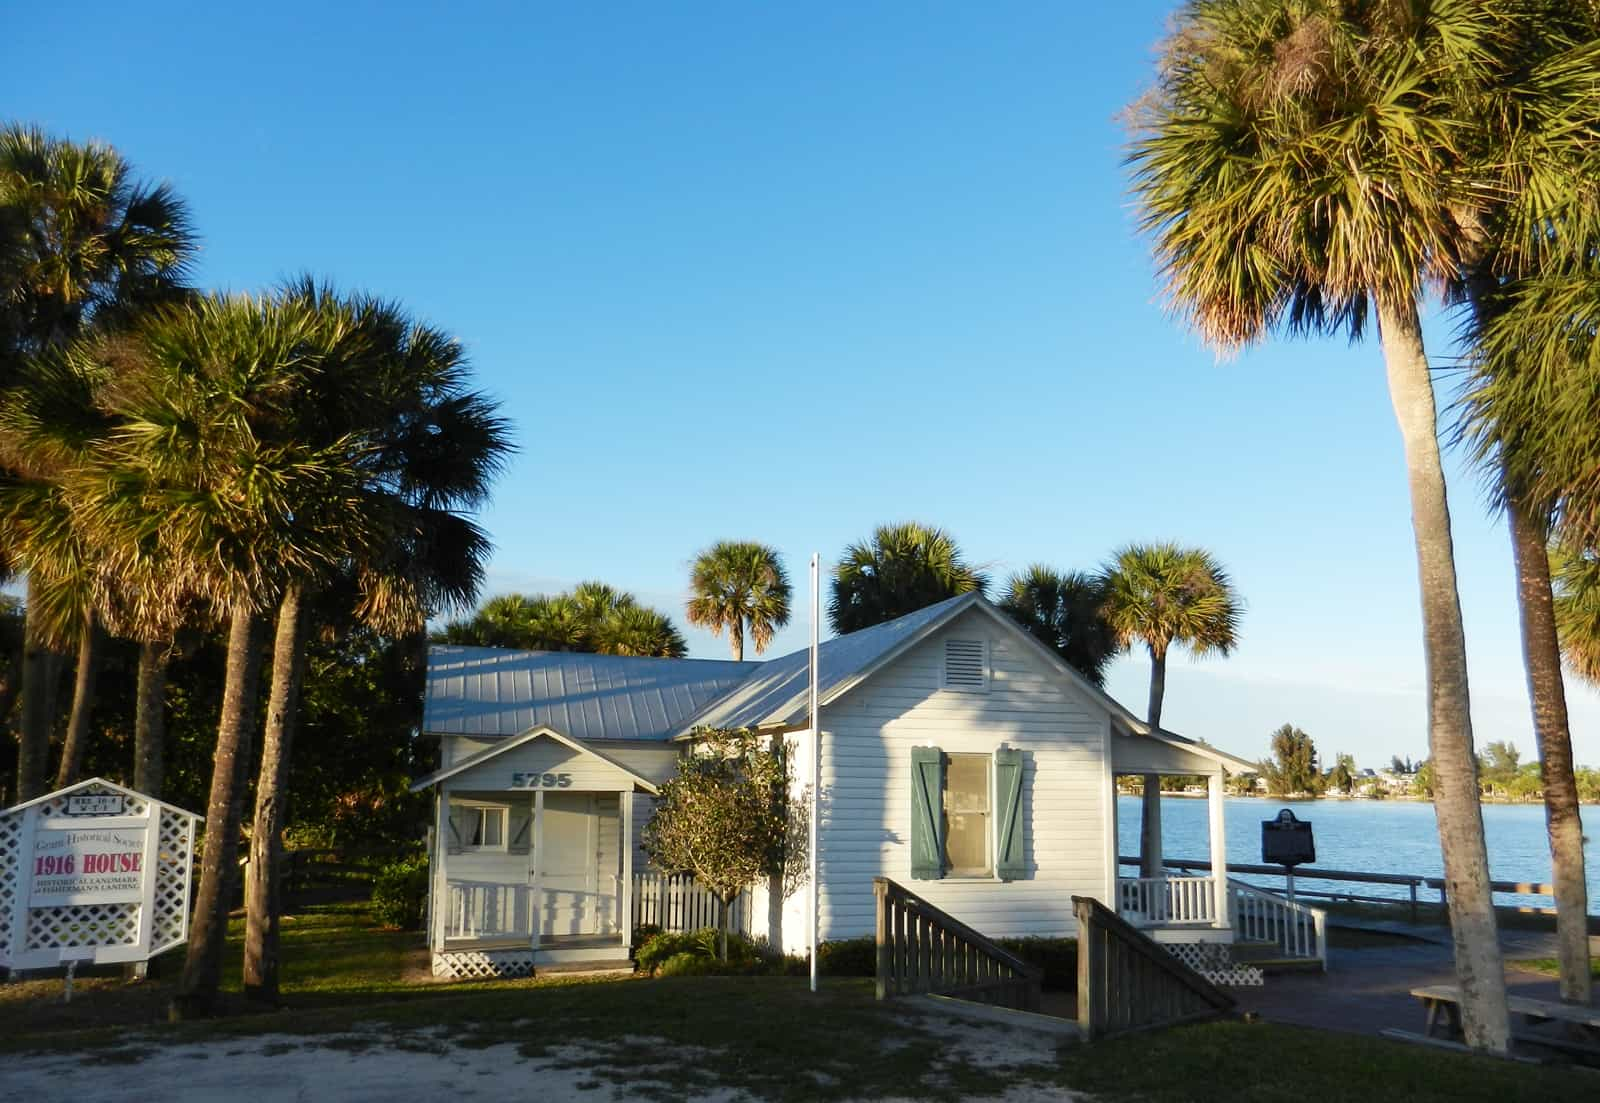 Old Florida scene along Indian River Lagoon (Photo: Bonnie Gross)